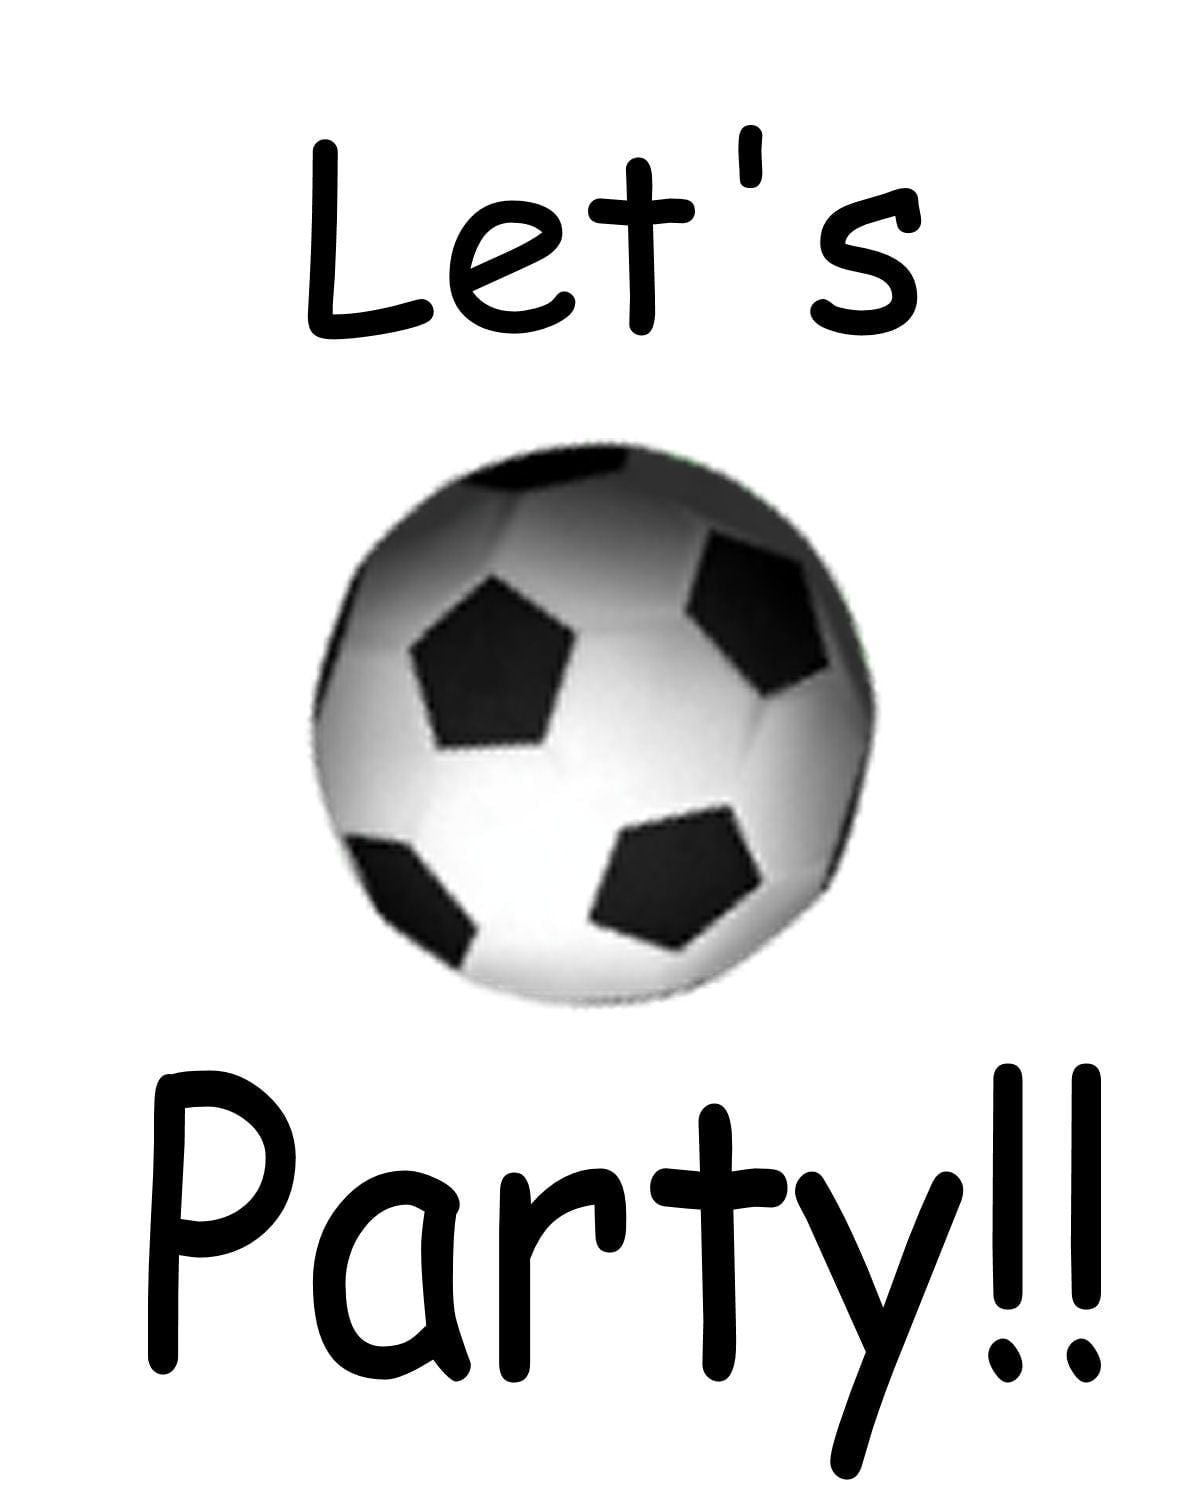 soccer party invitations templates - Gotta.yotti.co